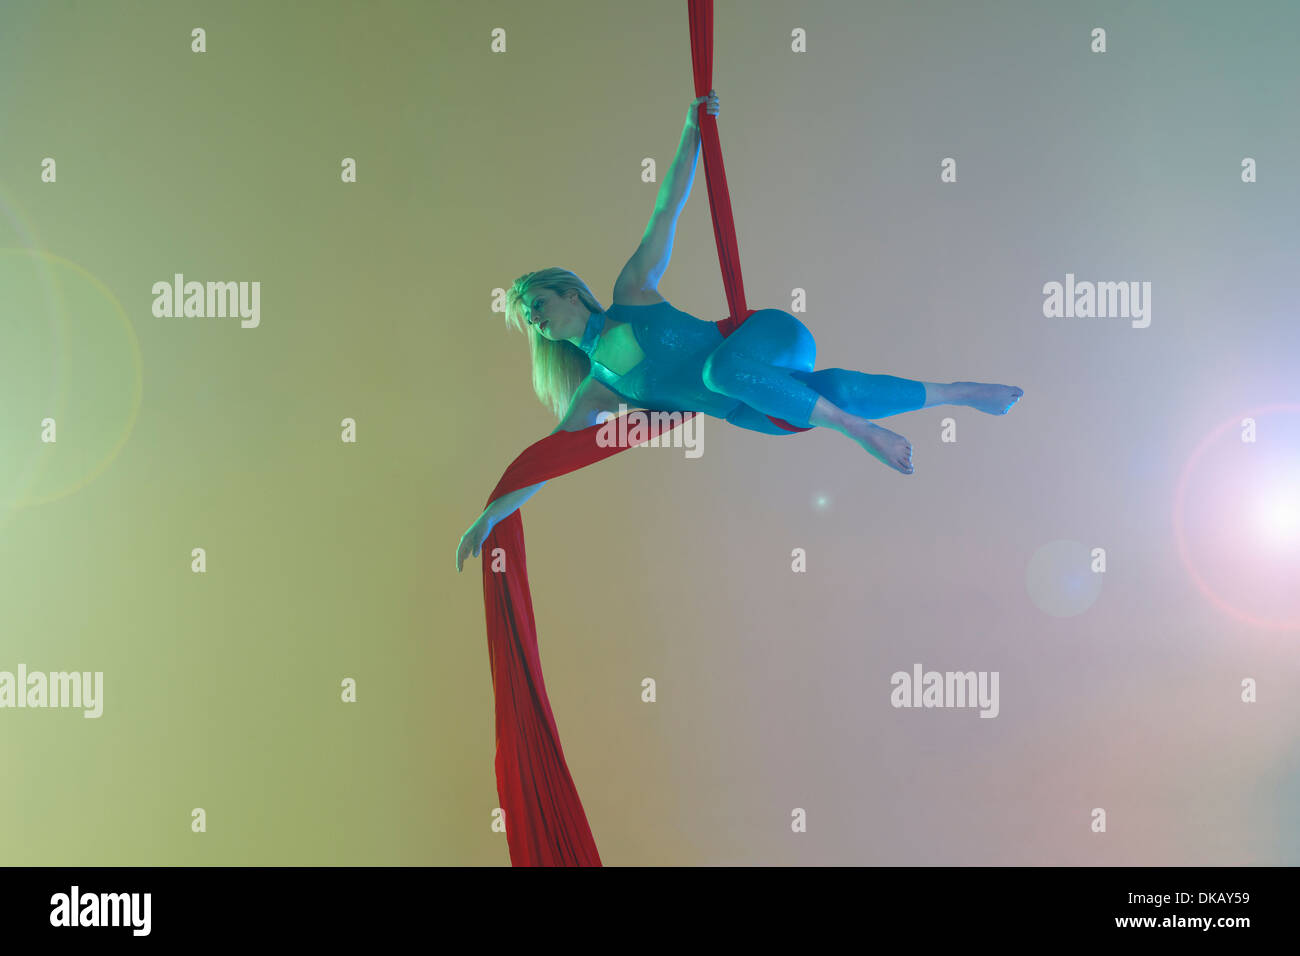 Aerial dancer with red ribbon - Stock Image